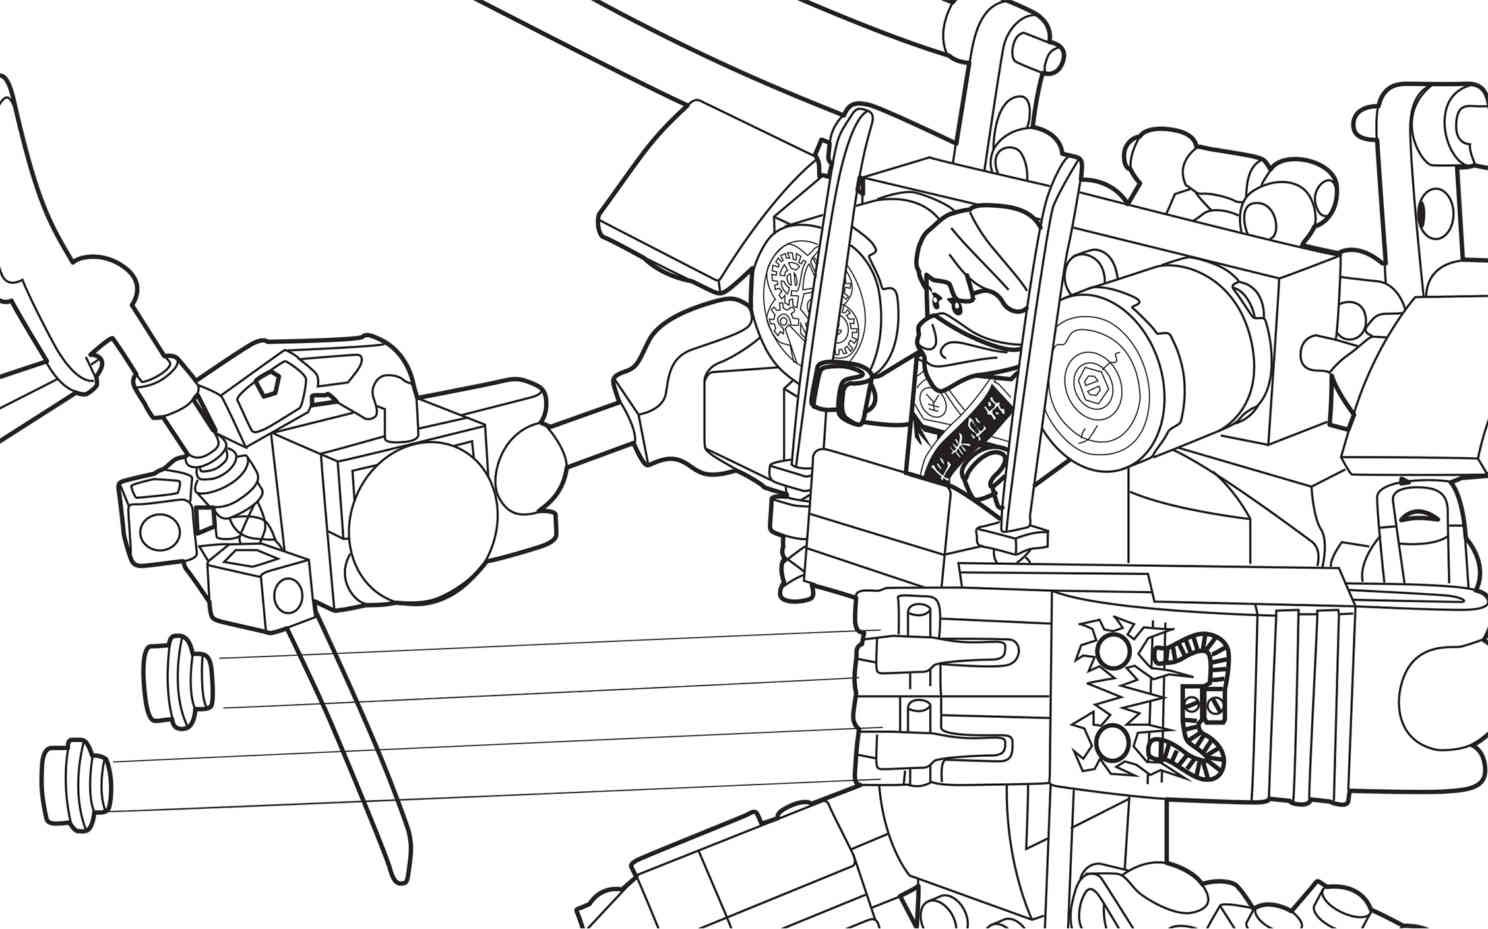 lego ninjago coloring sheet 70754 - Ninjago Pictures To Color